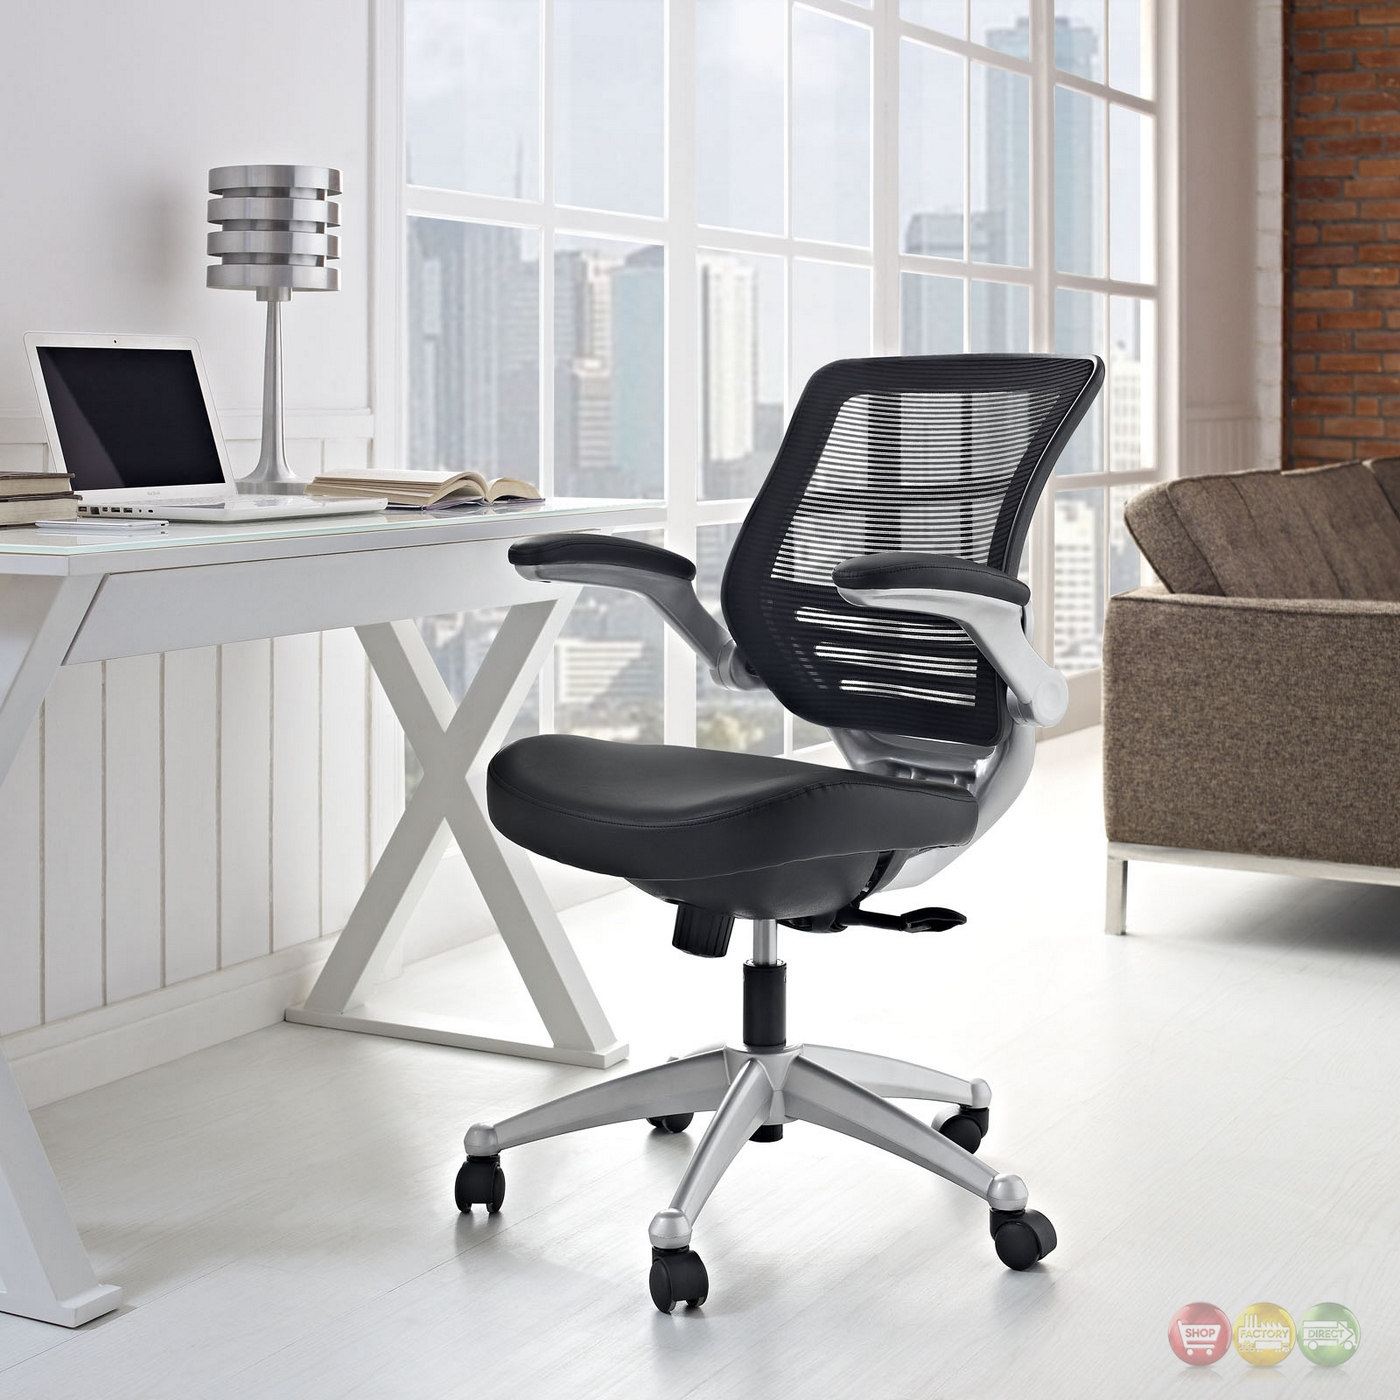 edge modern adjustable ergonomic leather office chair w mesh back